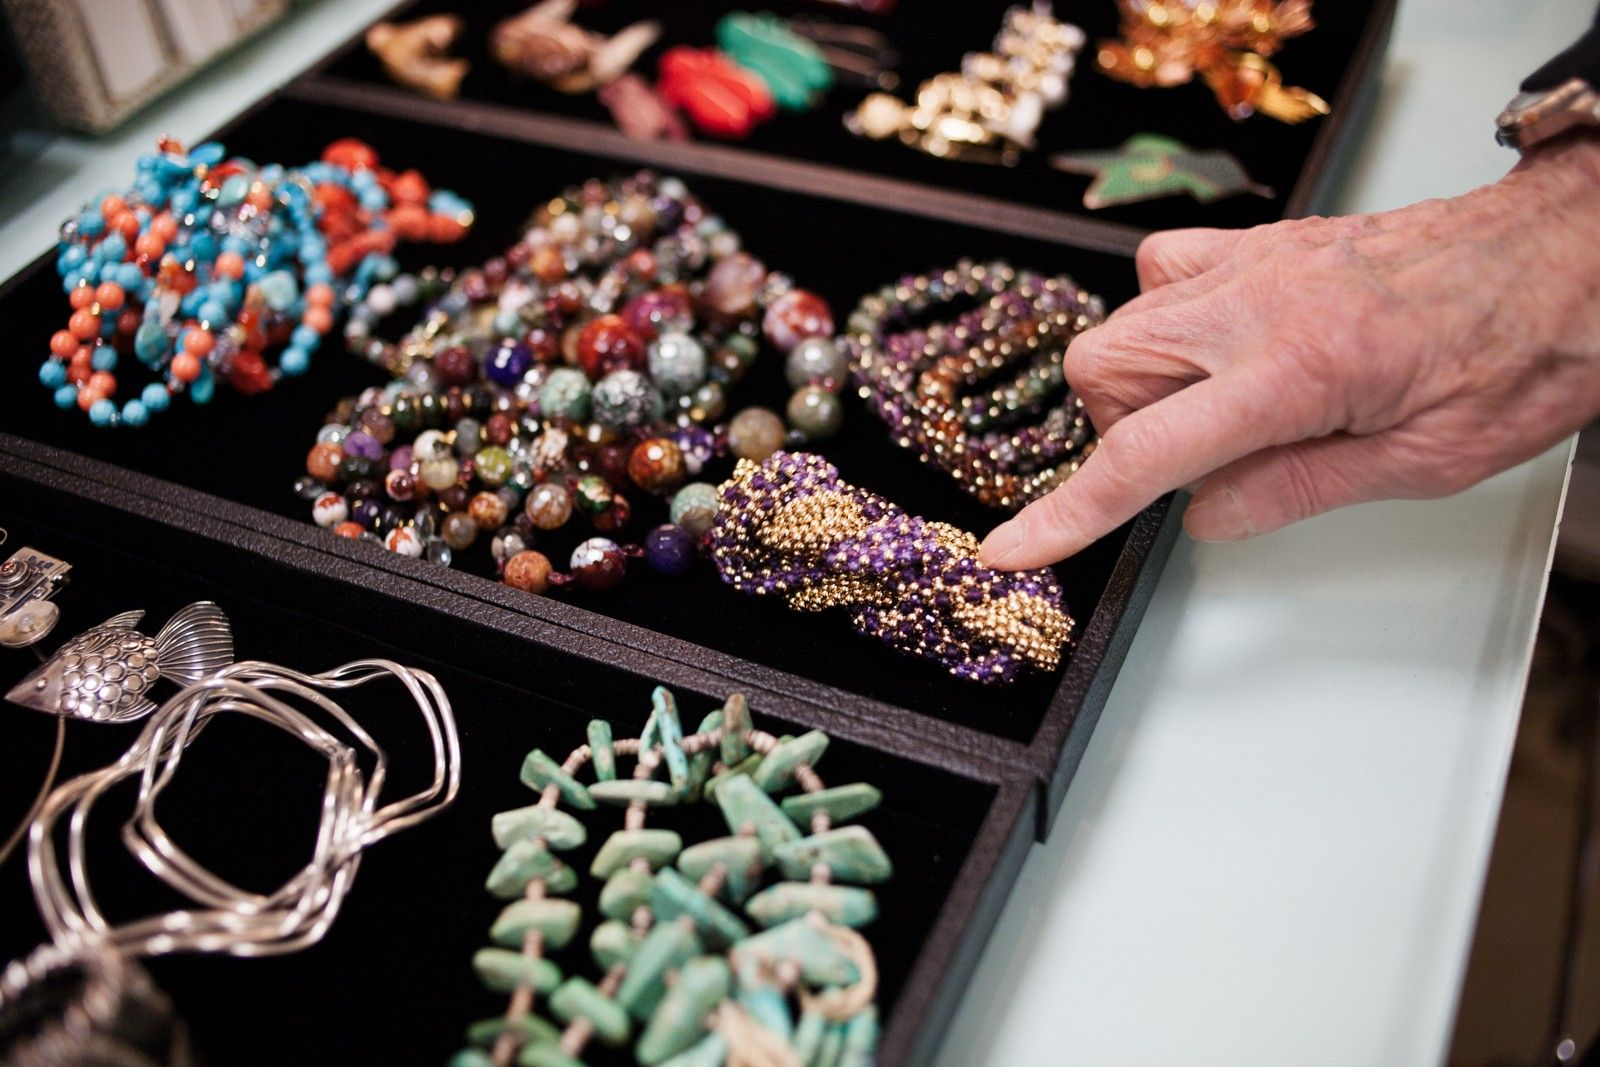 """85 & Awesome! Meet Bergdorf's Style Dynamo #refinery29  http://www.refinery29.com/betty-halbreich#slide-14  R29: Betty, can you talk about this amazing jewelry collection?BH: """"Some of it is gifts from my daughter, and I have some Ruser jewelry from California, too. This bracelet is by Meredith Frederick, who is a contemporary jeweler here. She's known for color, and I think this color is extraordinary. She really invented these roll-on bracelets, which have become s..."""